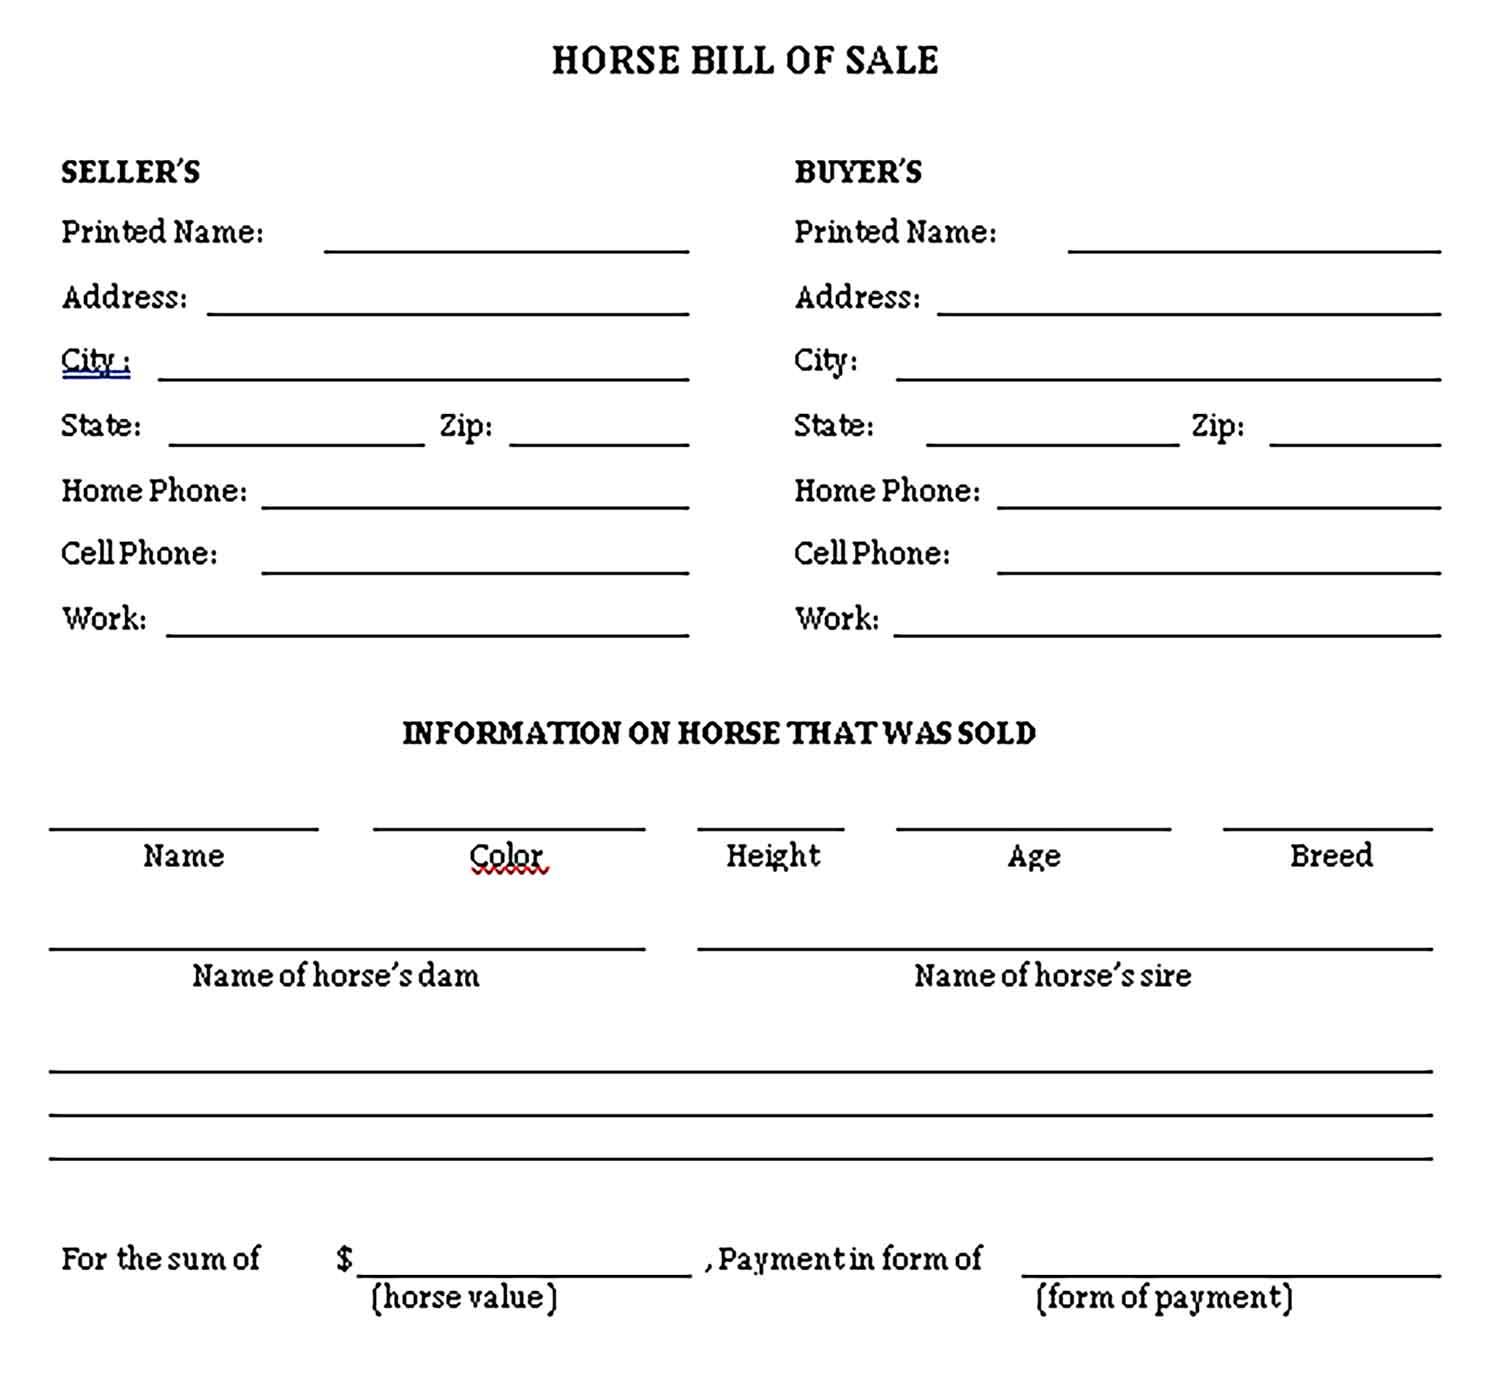 Sample horse bill of sale free Templates 1